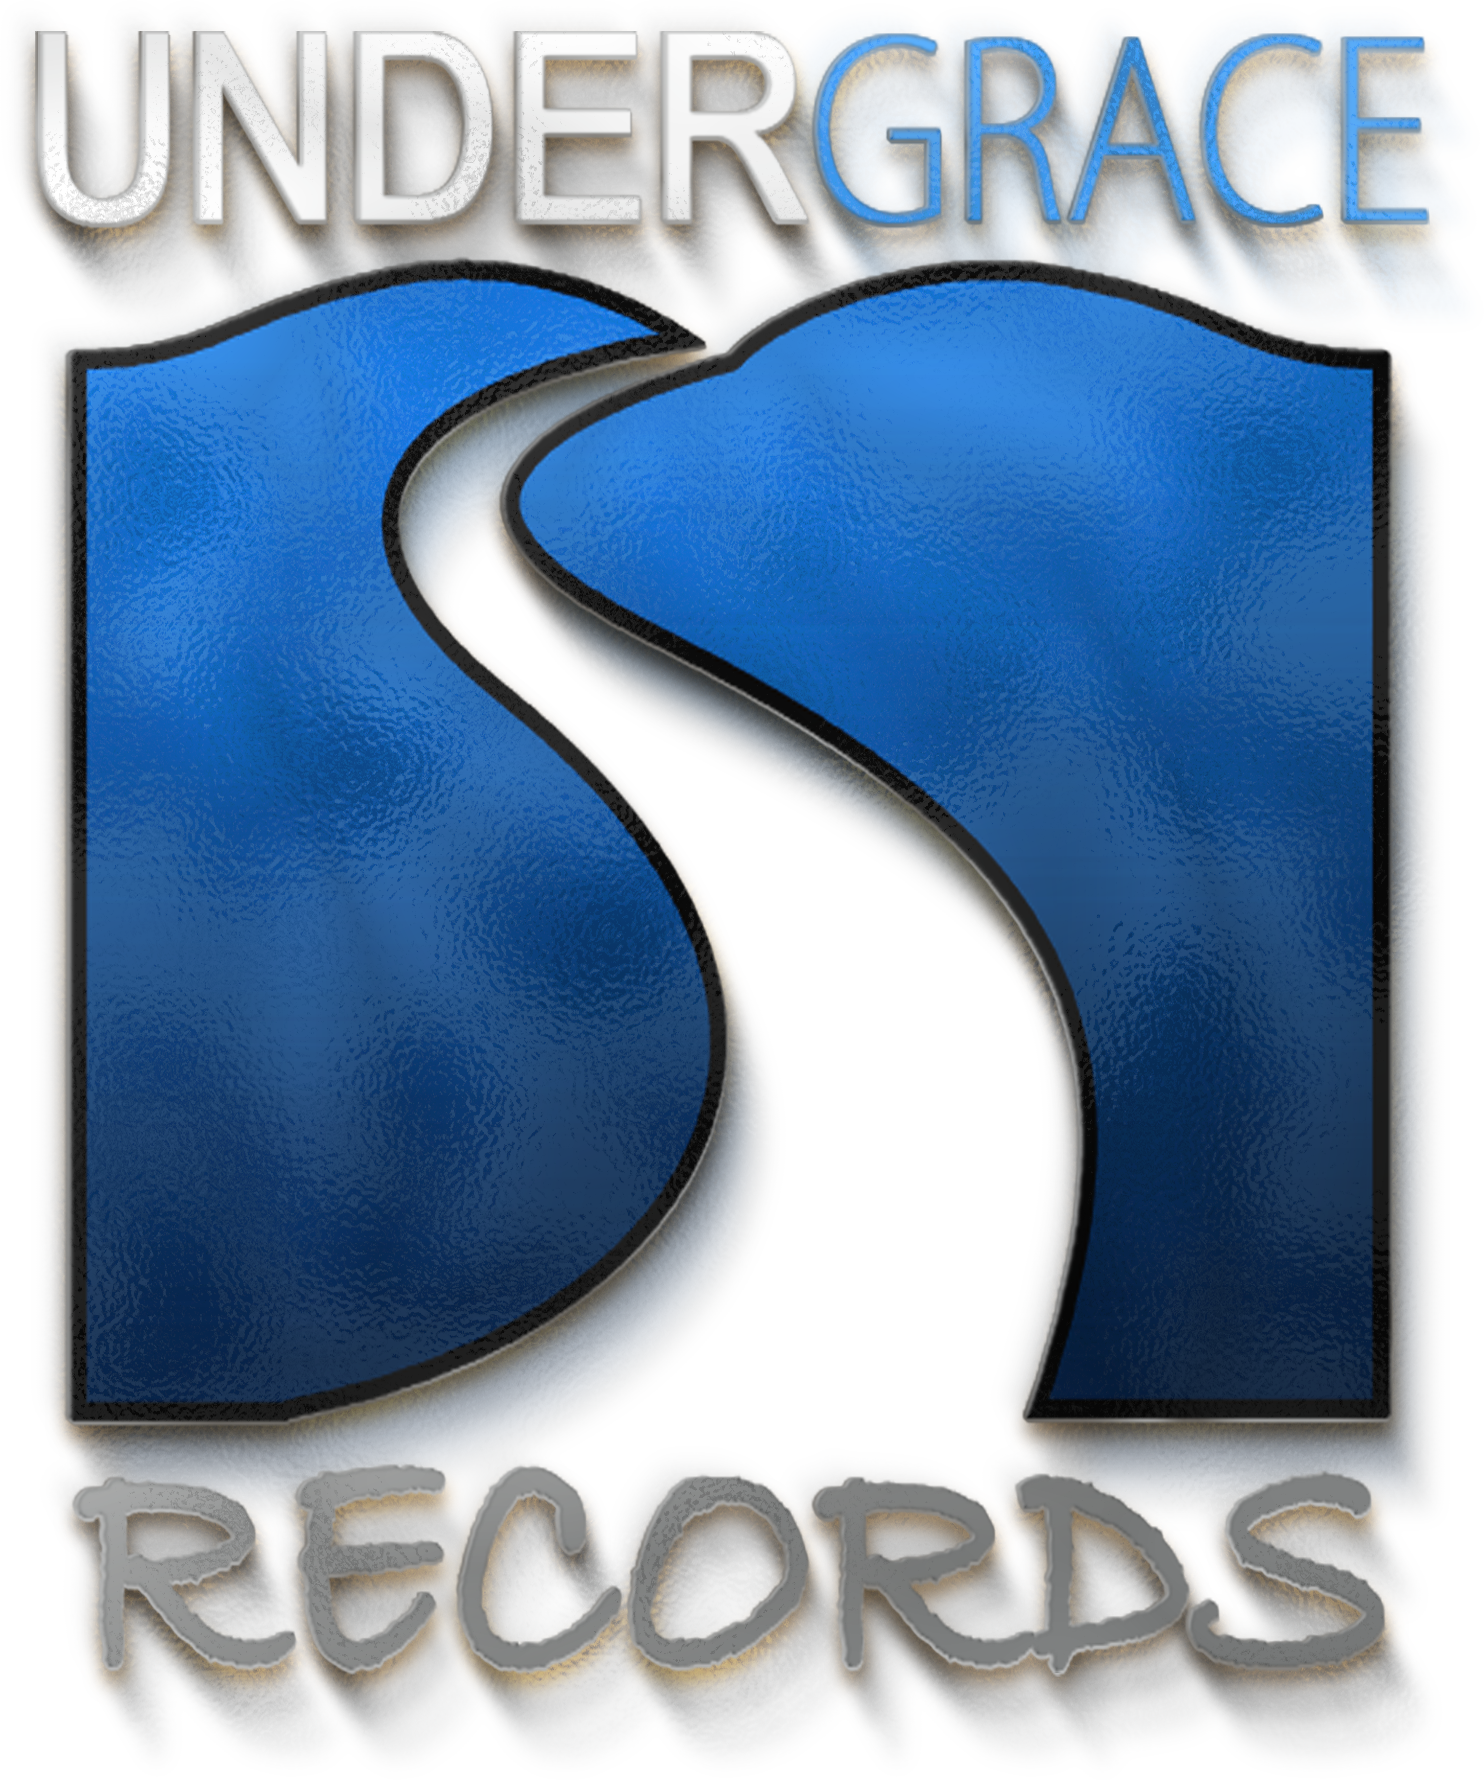 Under Grace Records